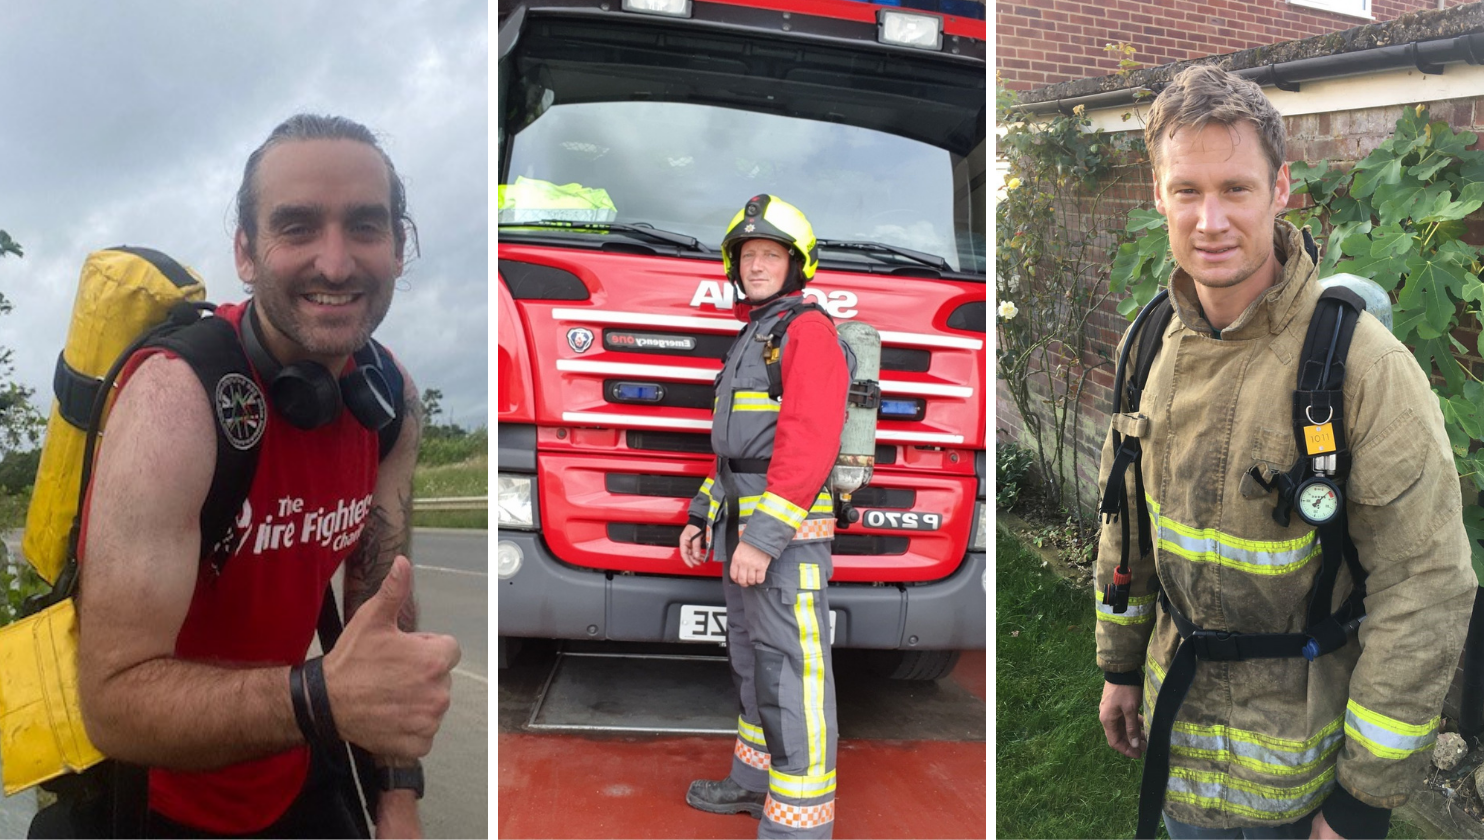 Firefighters take on London Marathon in full kit and BA sets